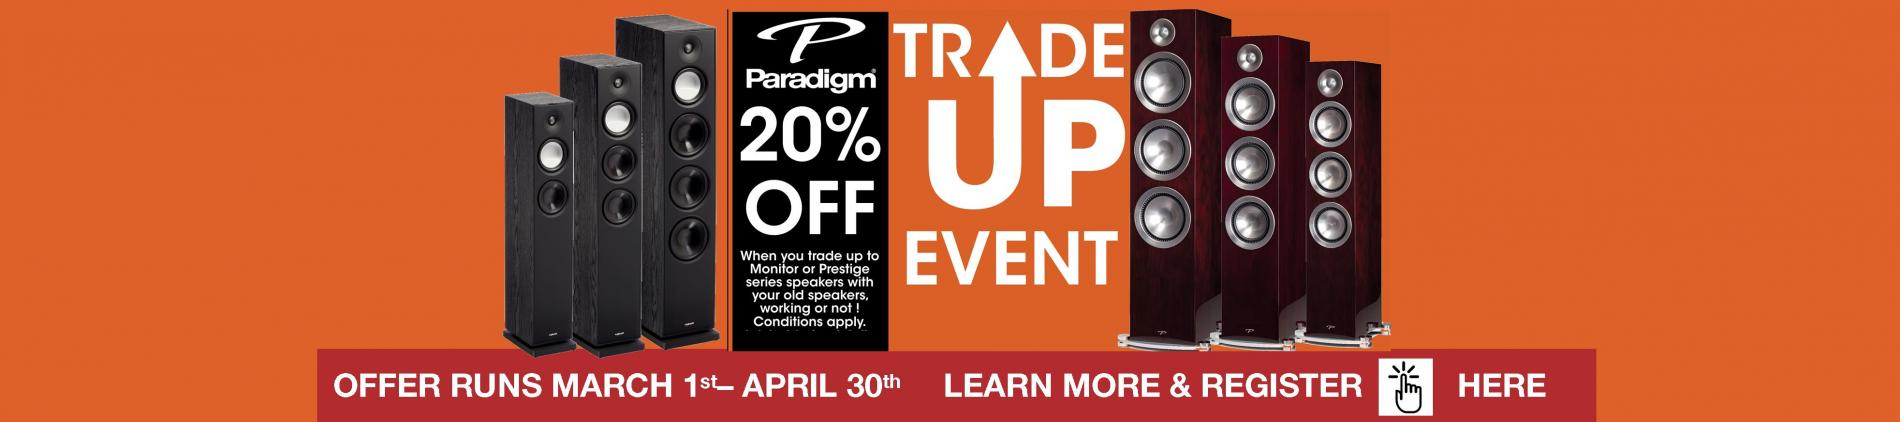 Paradigm speakers, Paradigm Victoria BC, Stereos Victoria, BC, Prestige speakers, Paradigm Monitor Series speakers, Trade-in, Trade up, tower speakers, subwoofers,